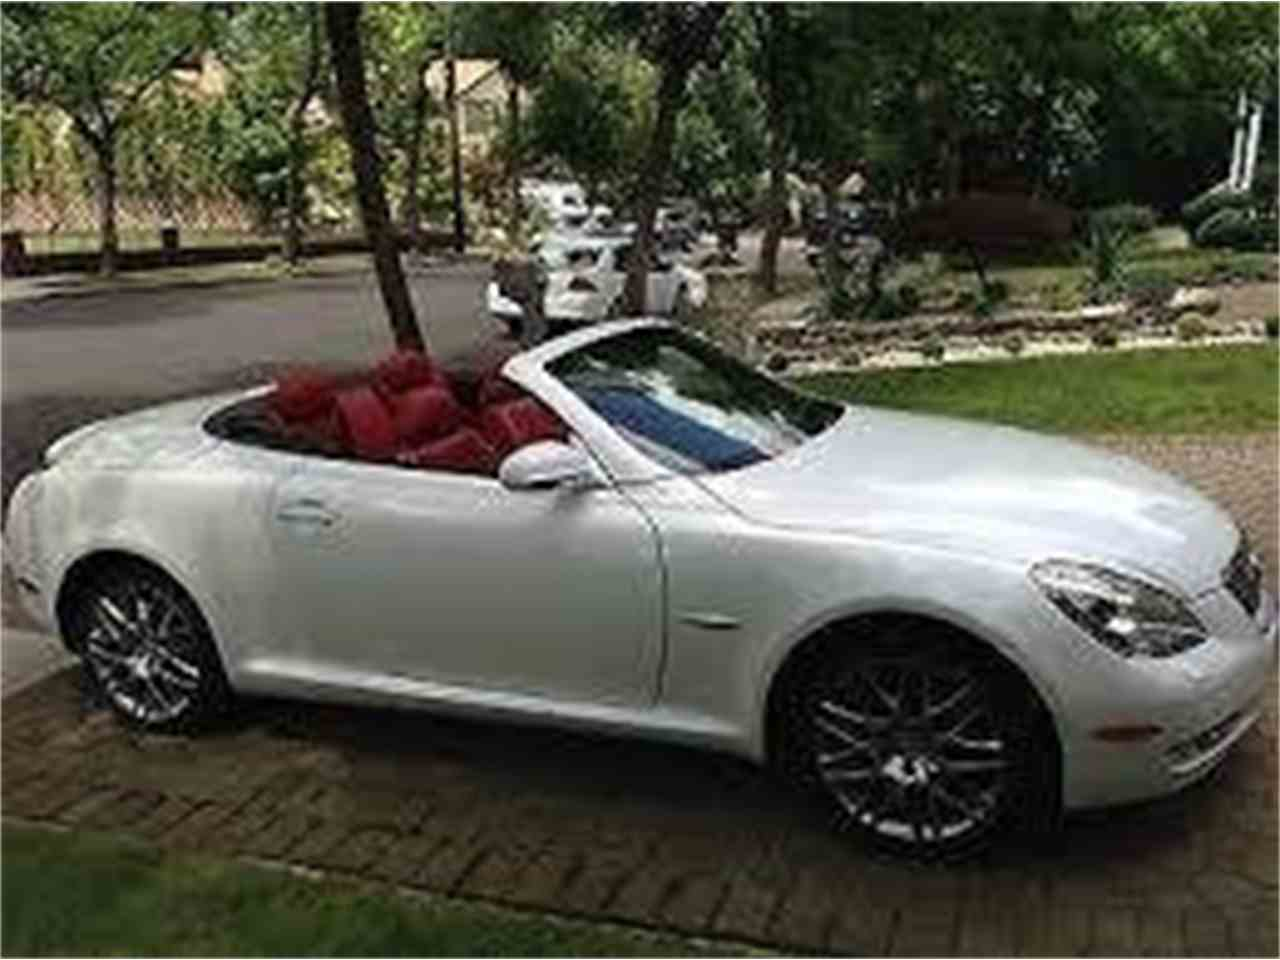 2007 lexus sc430 pebble beach edition convertible for sale. Black Bedroom Furniture Sets. Home Design Ideas